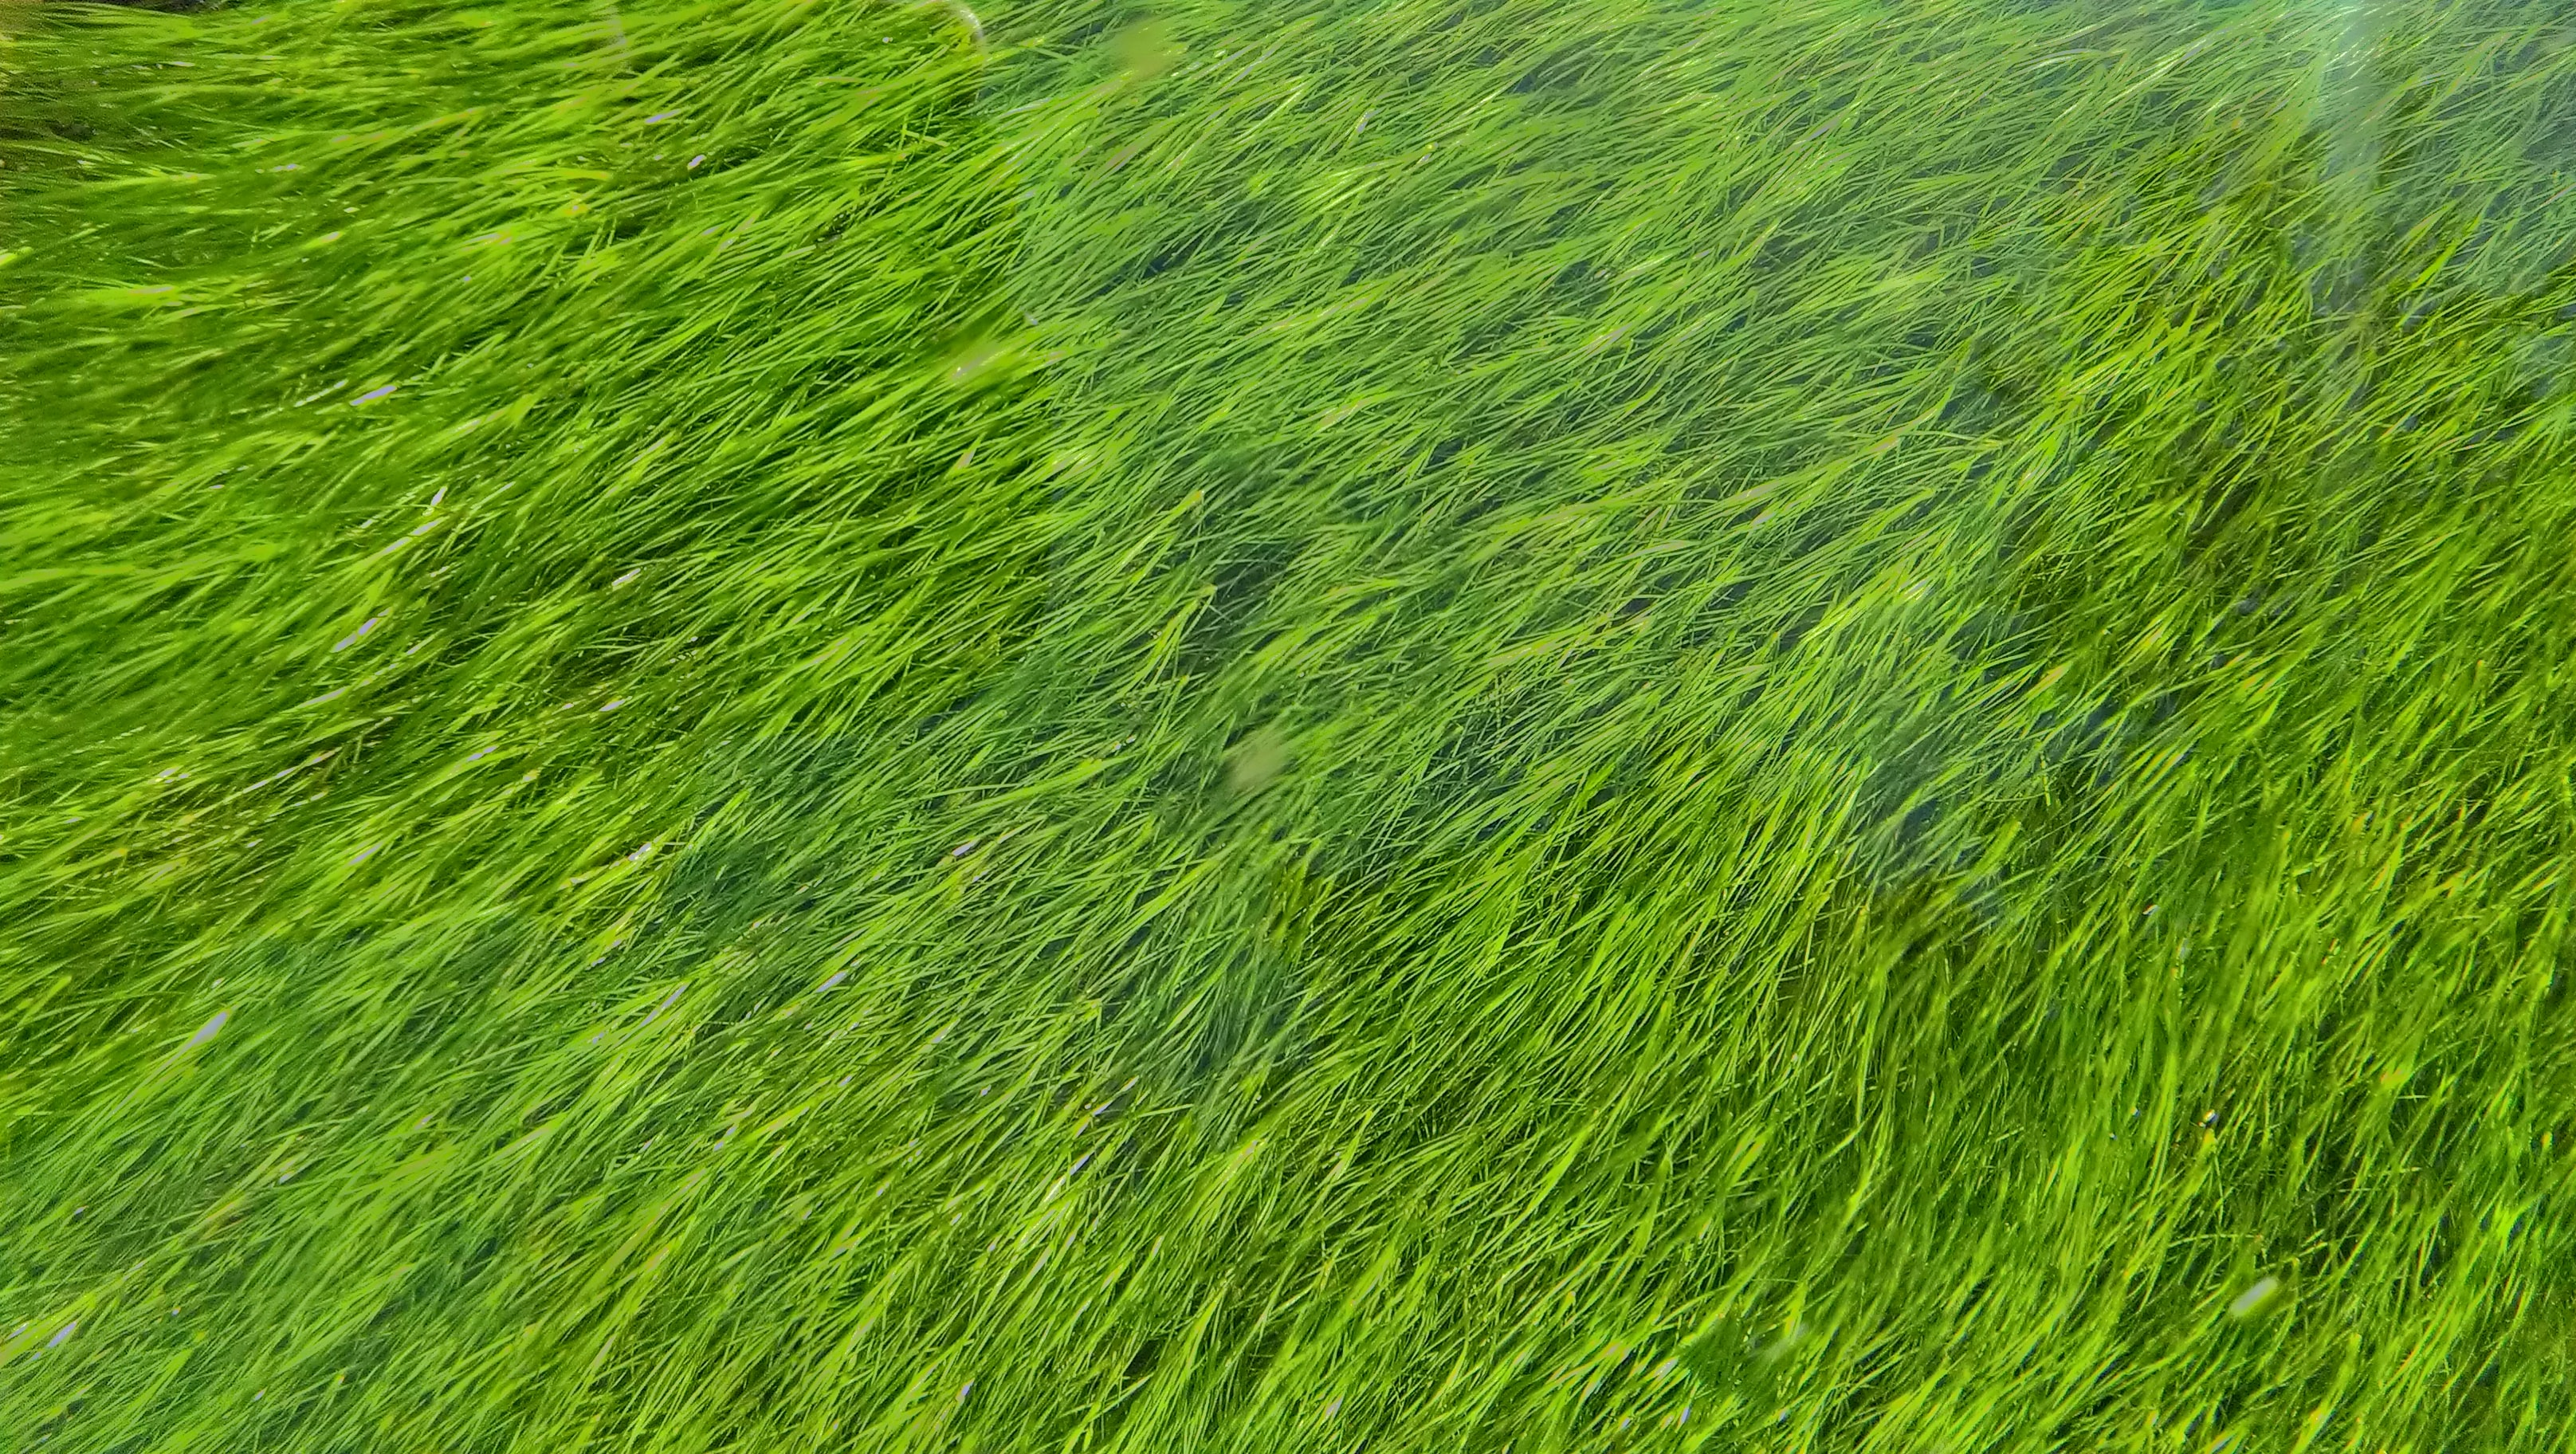 A top view of green grass filling the entire frame